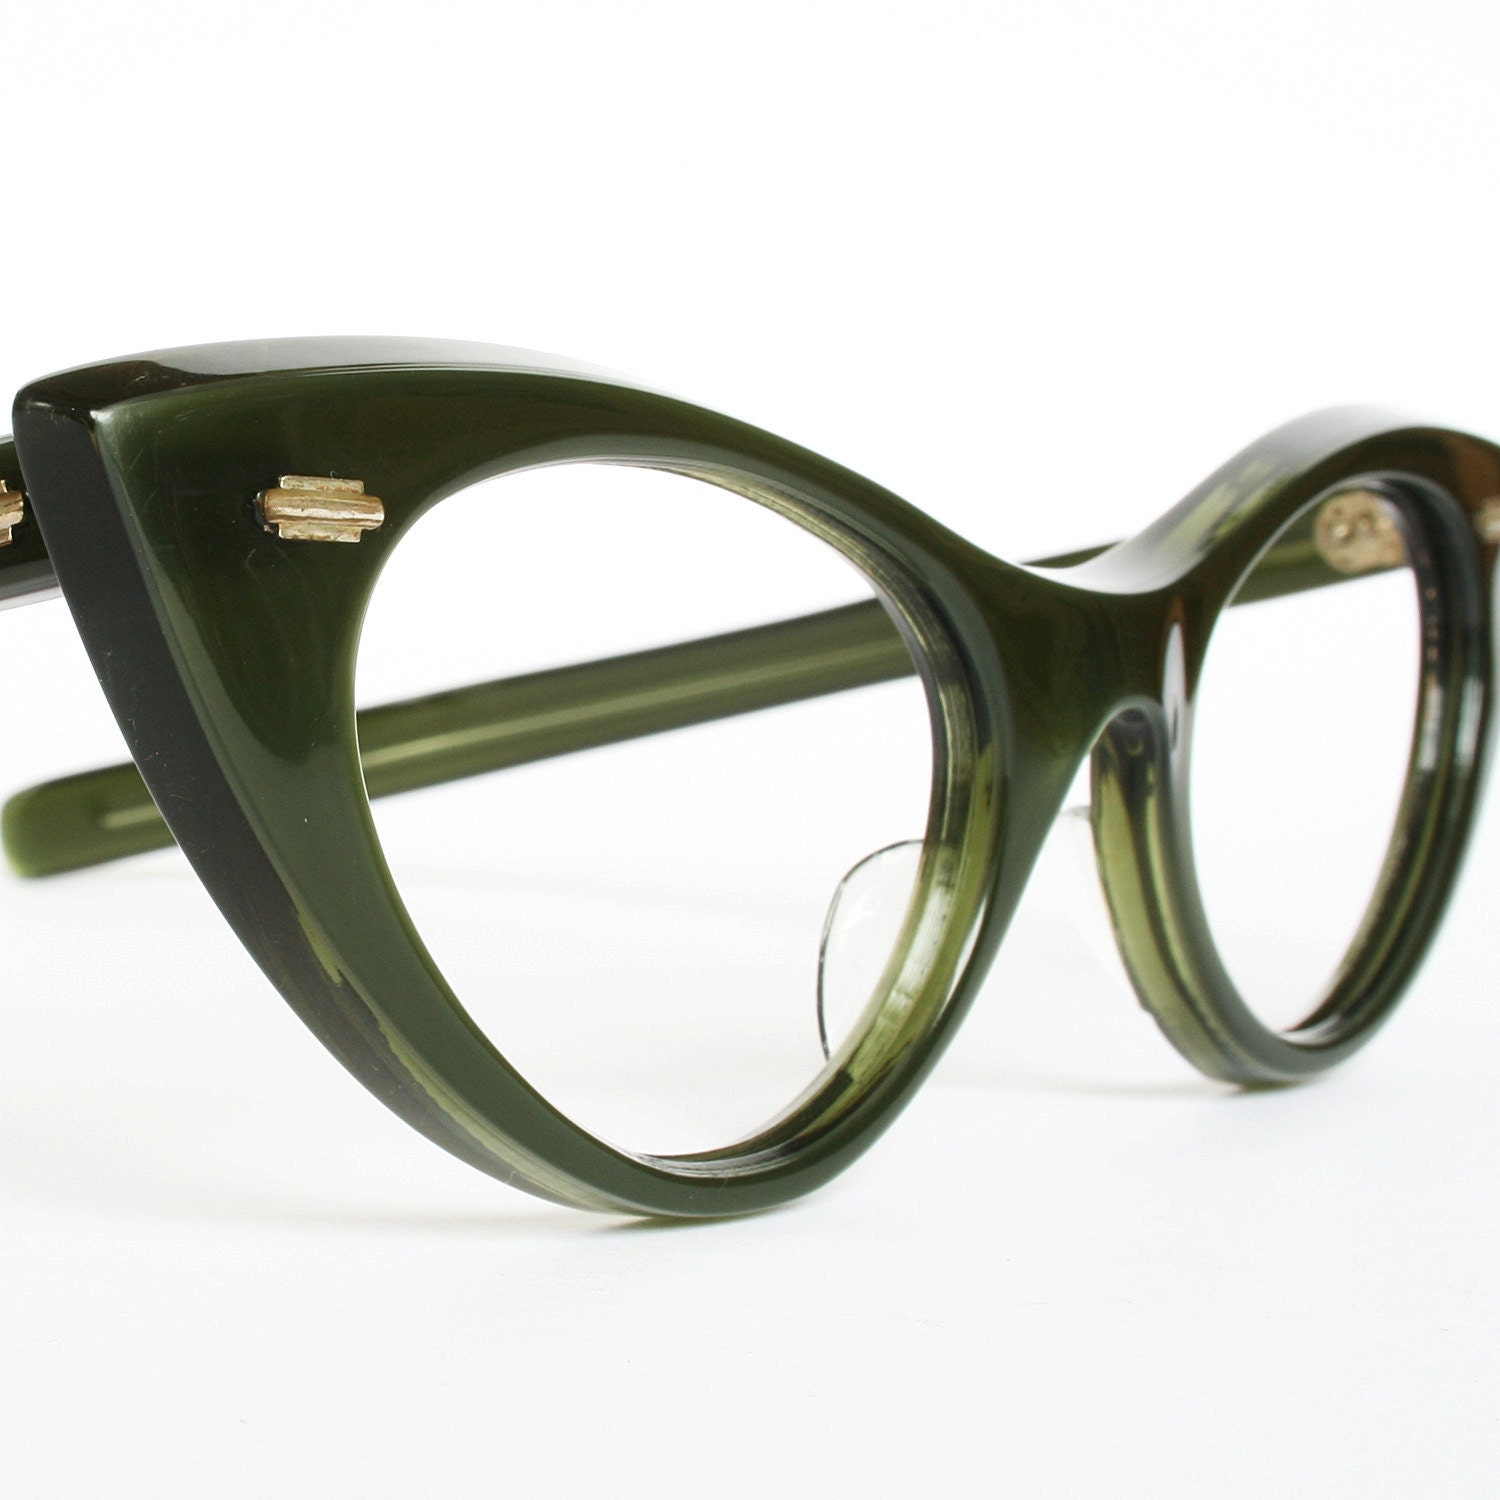 Satiny Green Vintage Cat Eye Glasses by VintageCatEyeGlasses